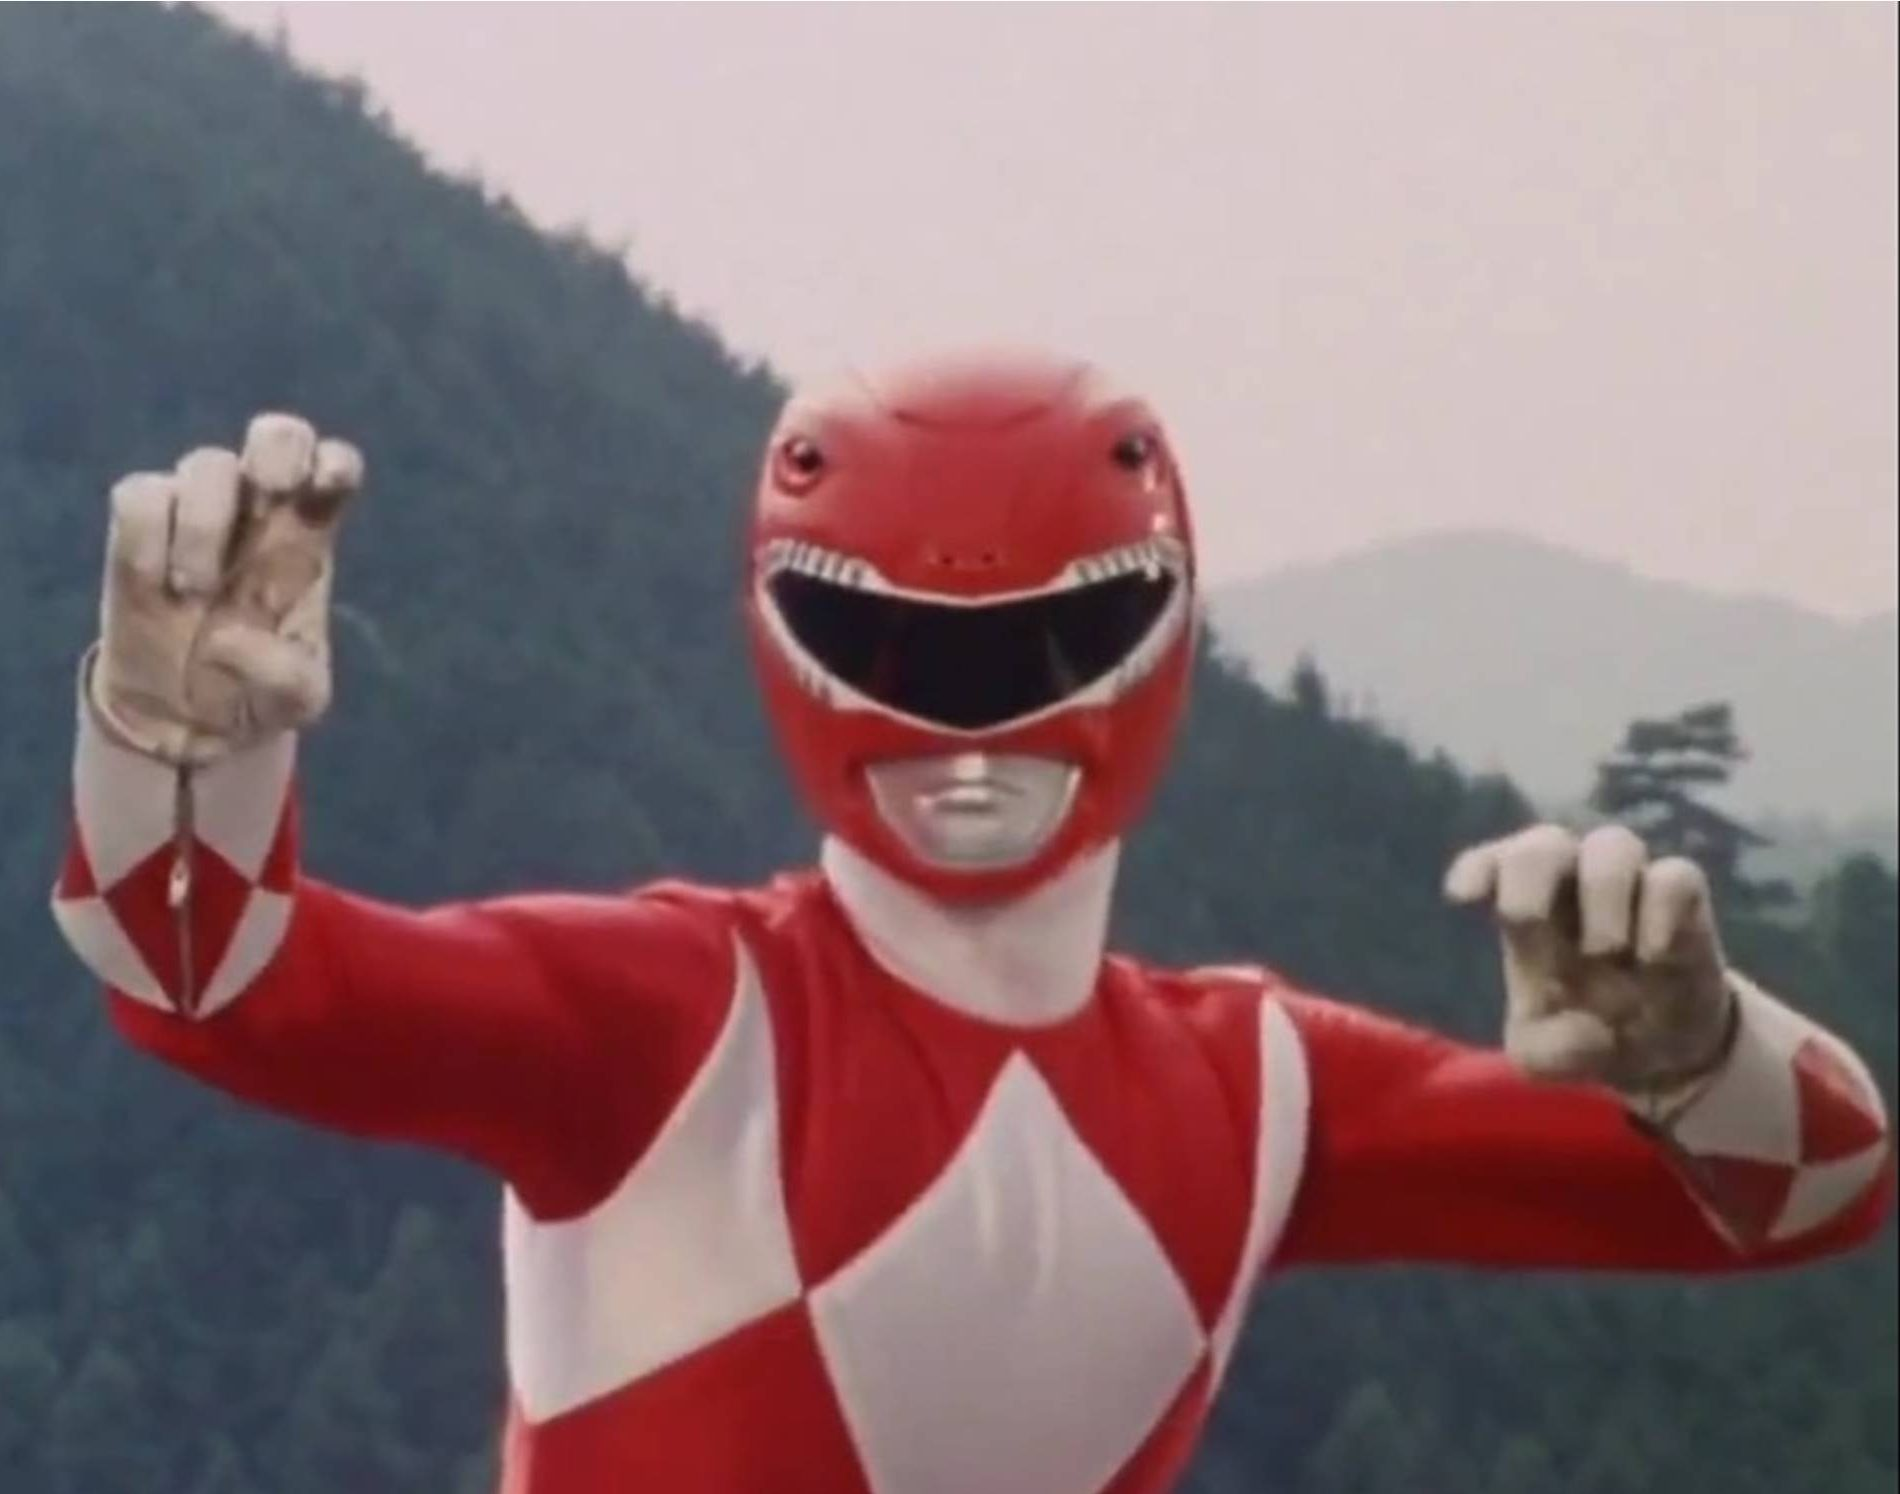 Mighty Morphin Red Ranger Pose e1606297997844 20 High-Kicking Facts About Mighty Morphin Power Rangers